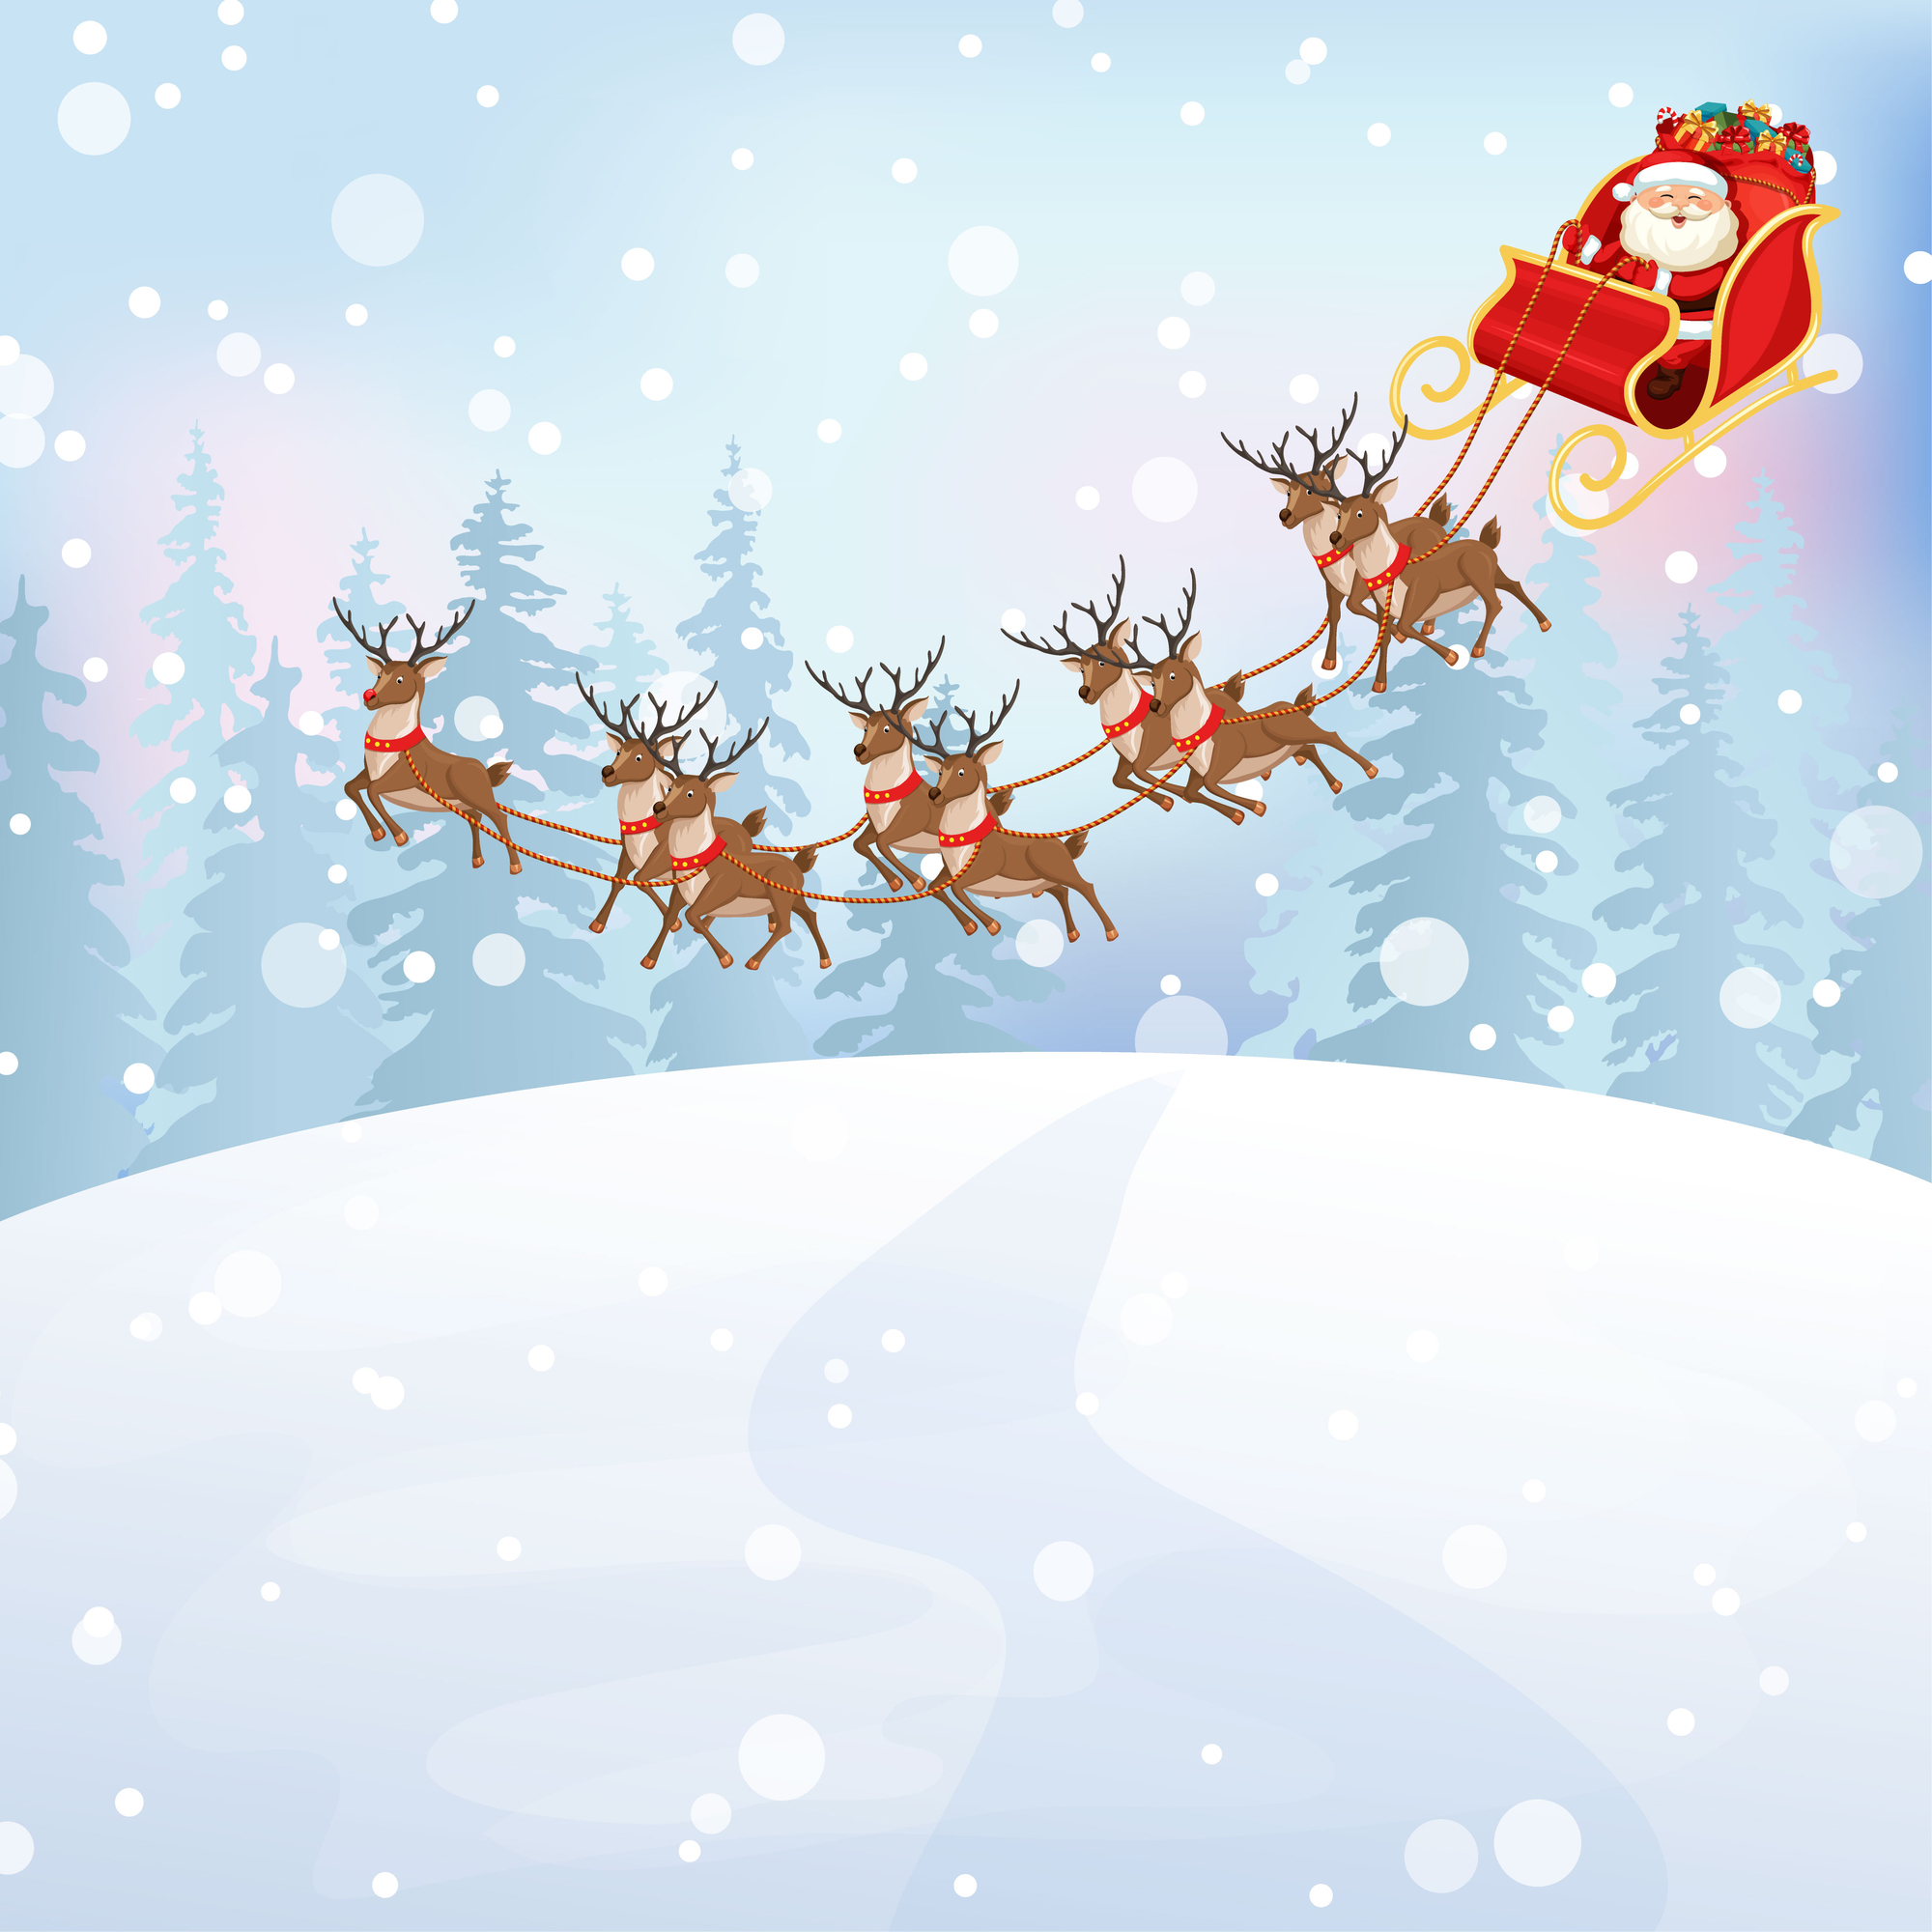 How Many Reindeer Does Santa Have